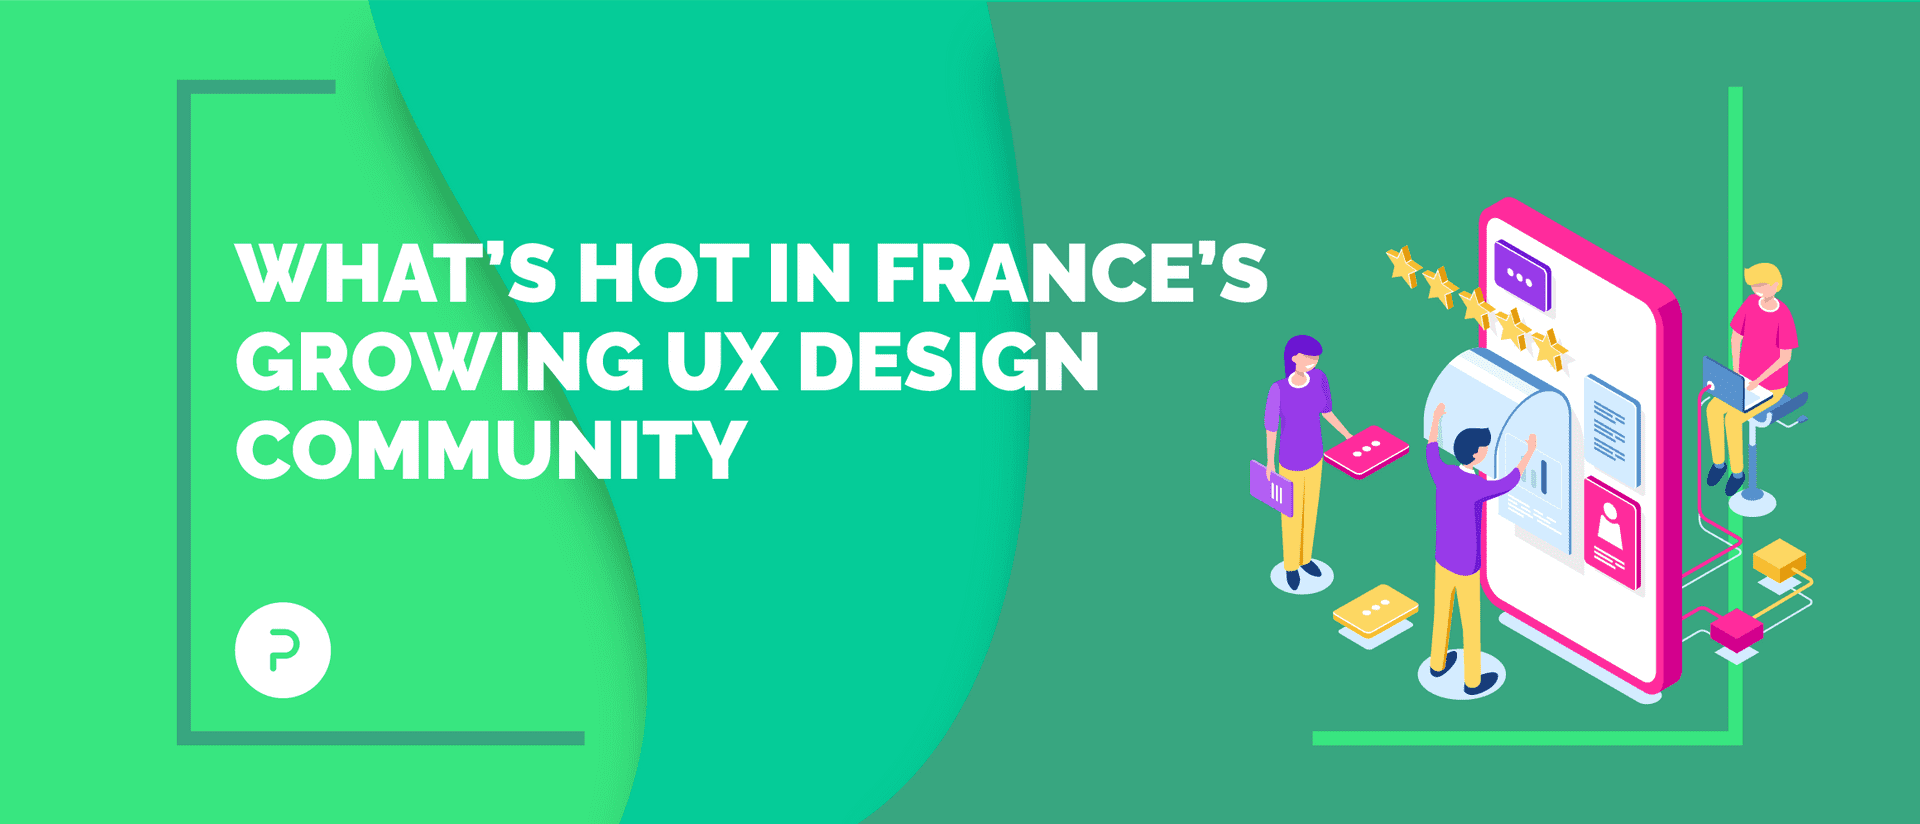 Games, Ethics and Voice: What's Hot in France's UX Design Community